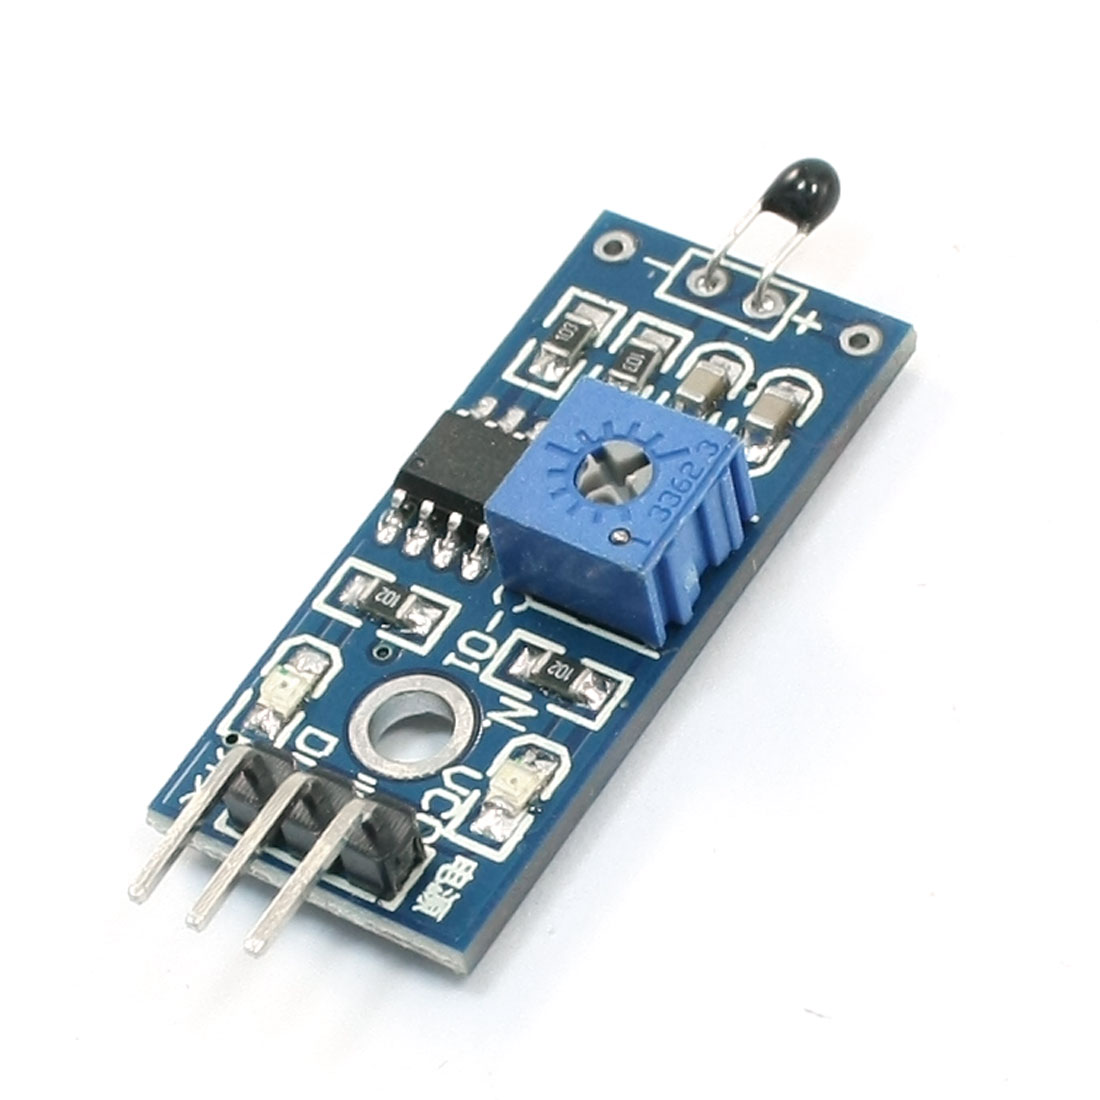 Thermal Control Temperature Switch Sensor Module for MCU Robot Kit